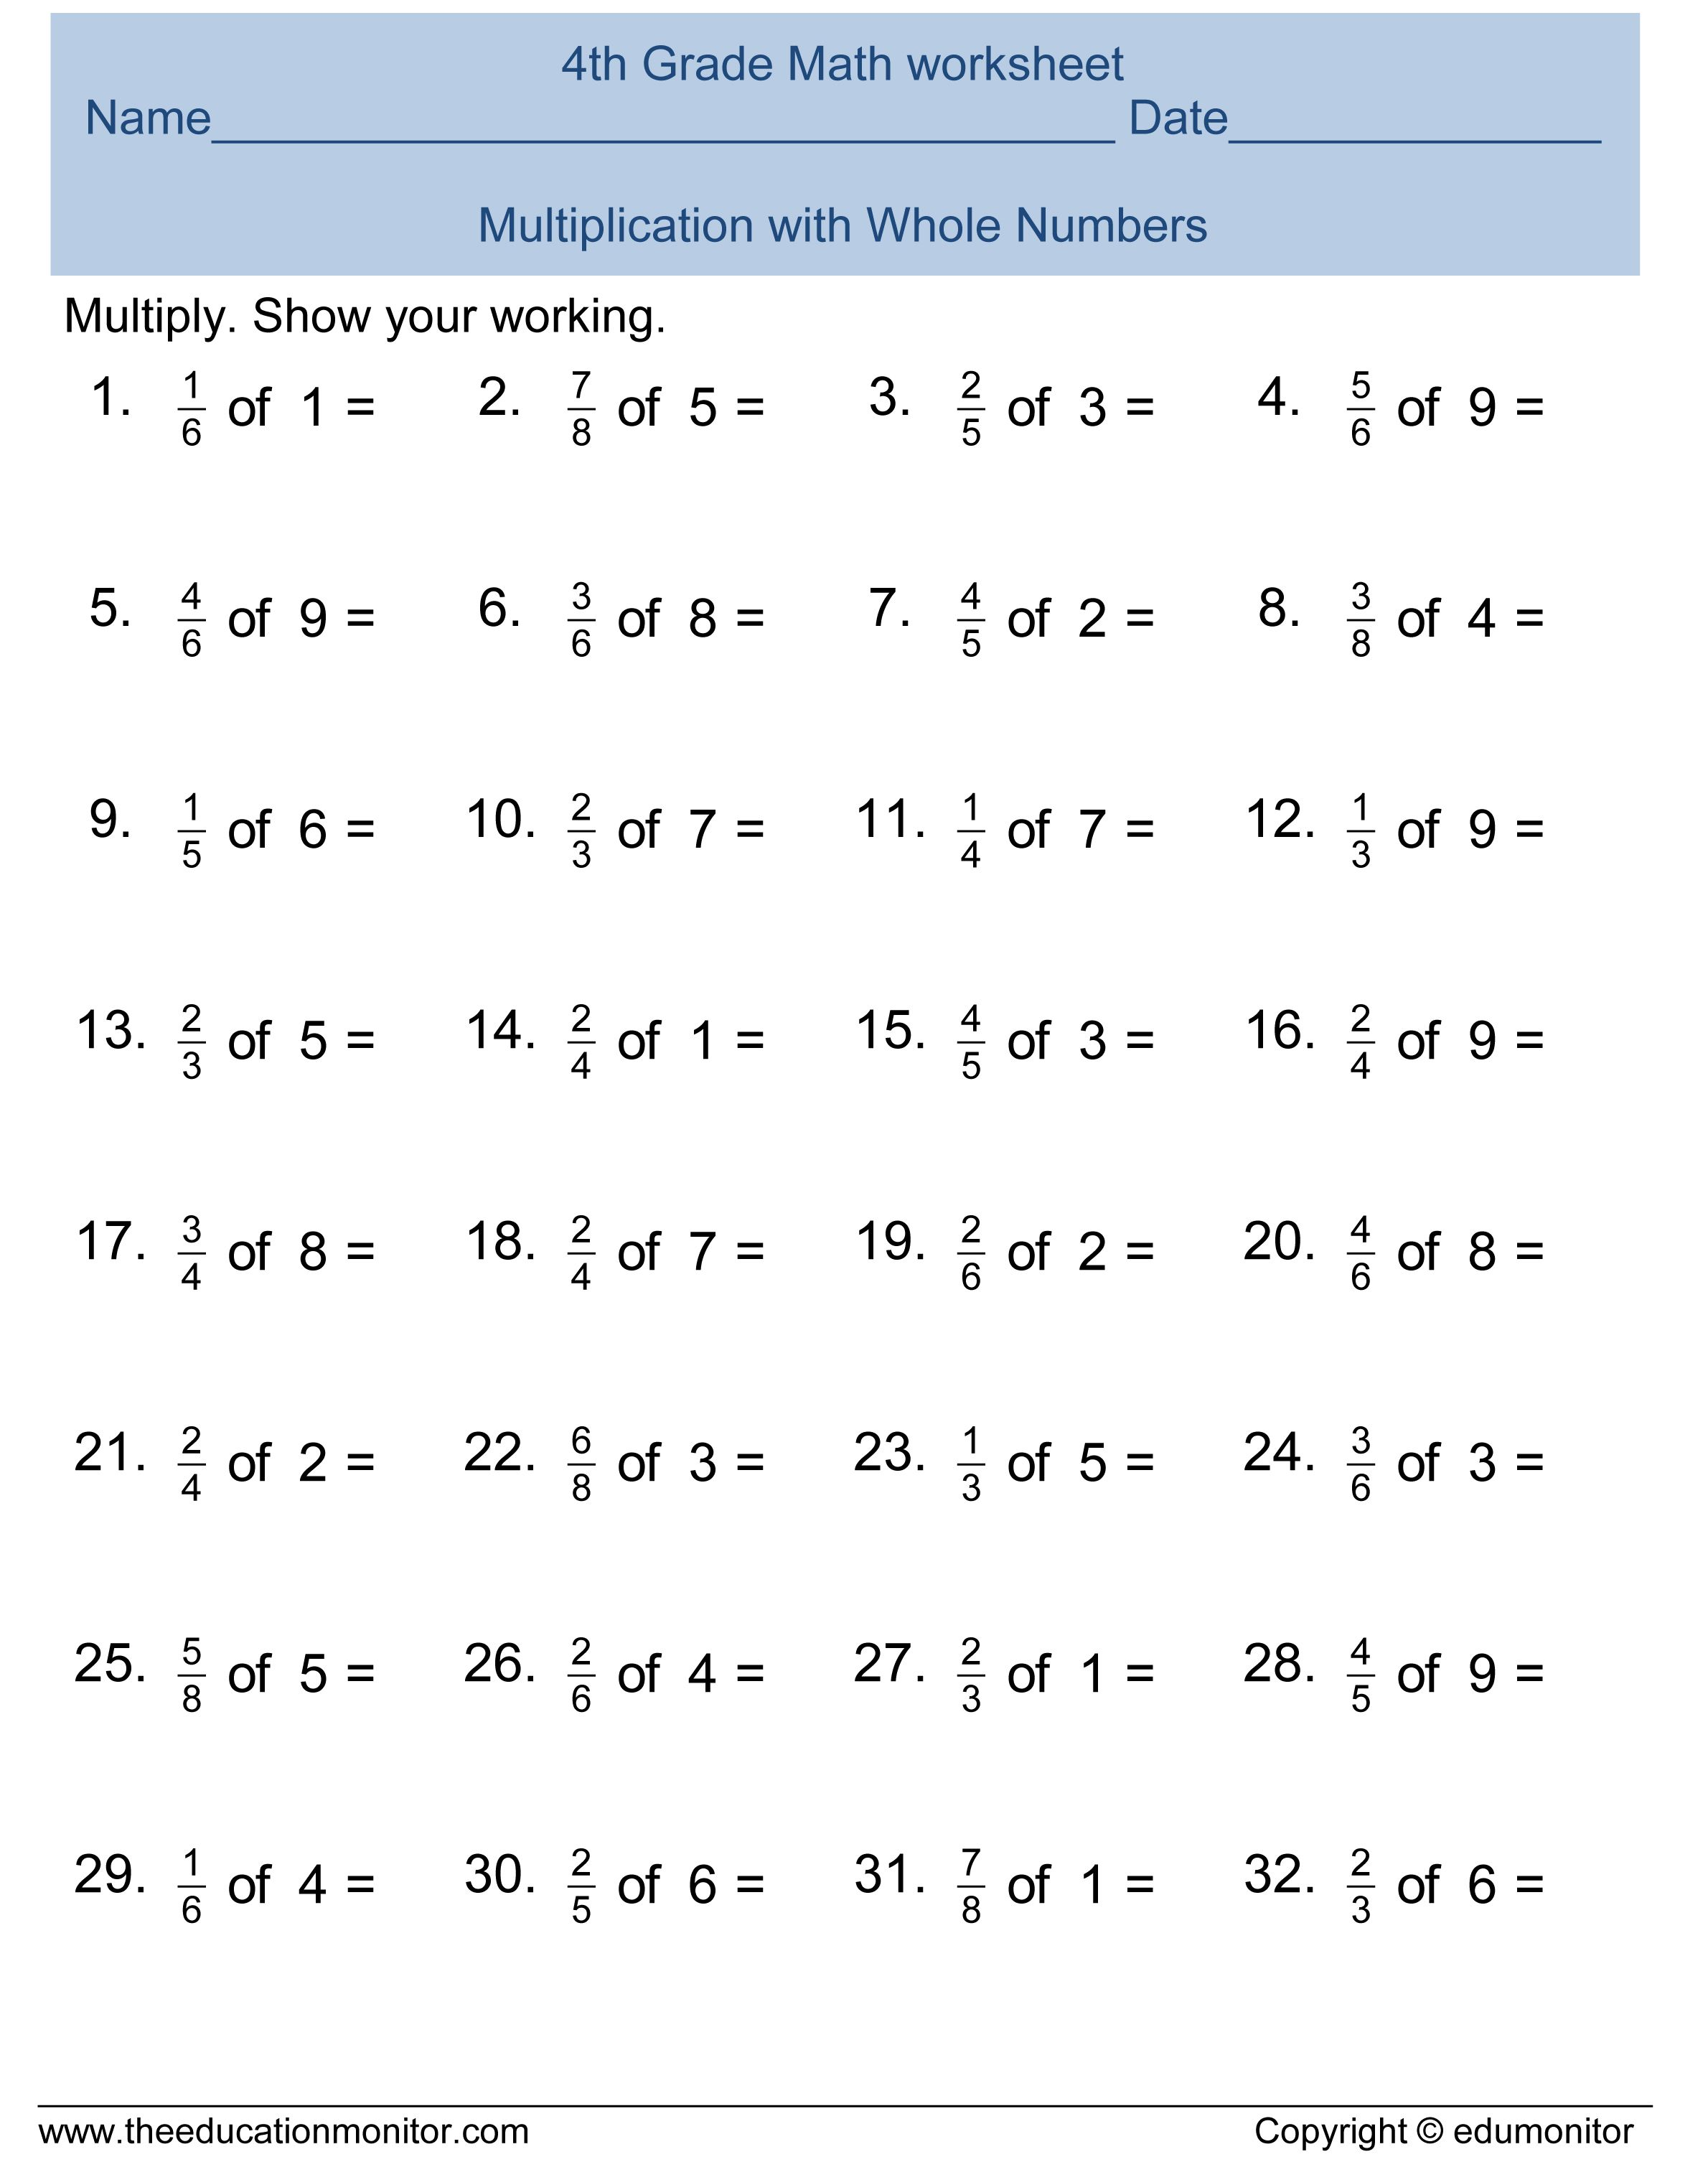 Image result for fractions worksheets grade 4 4th grade